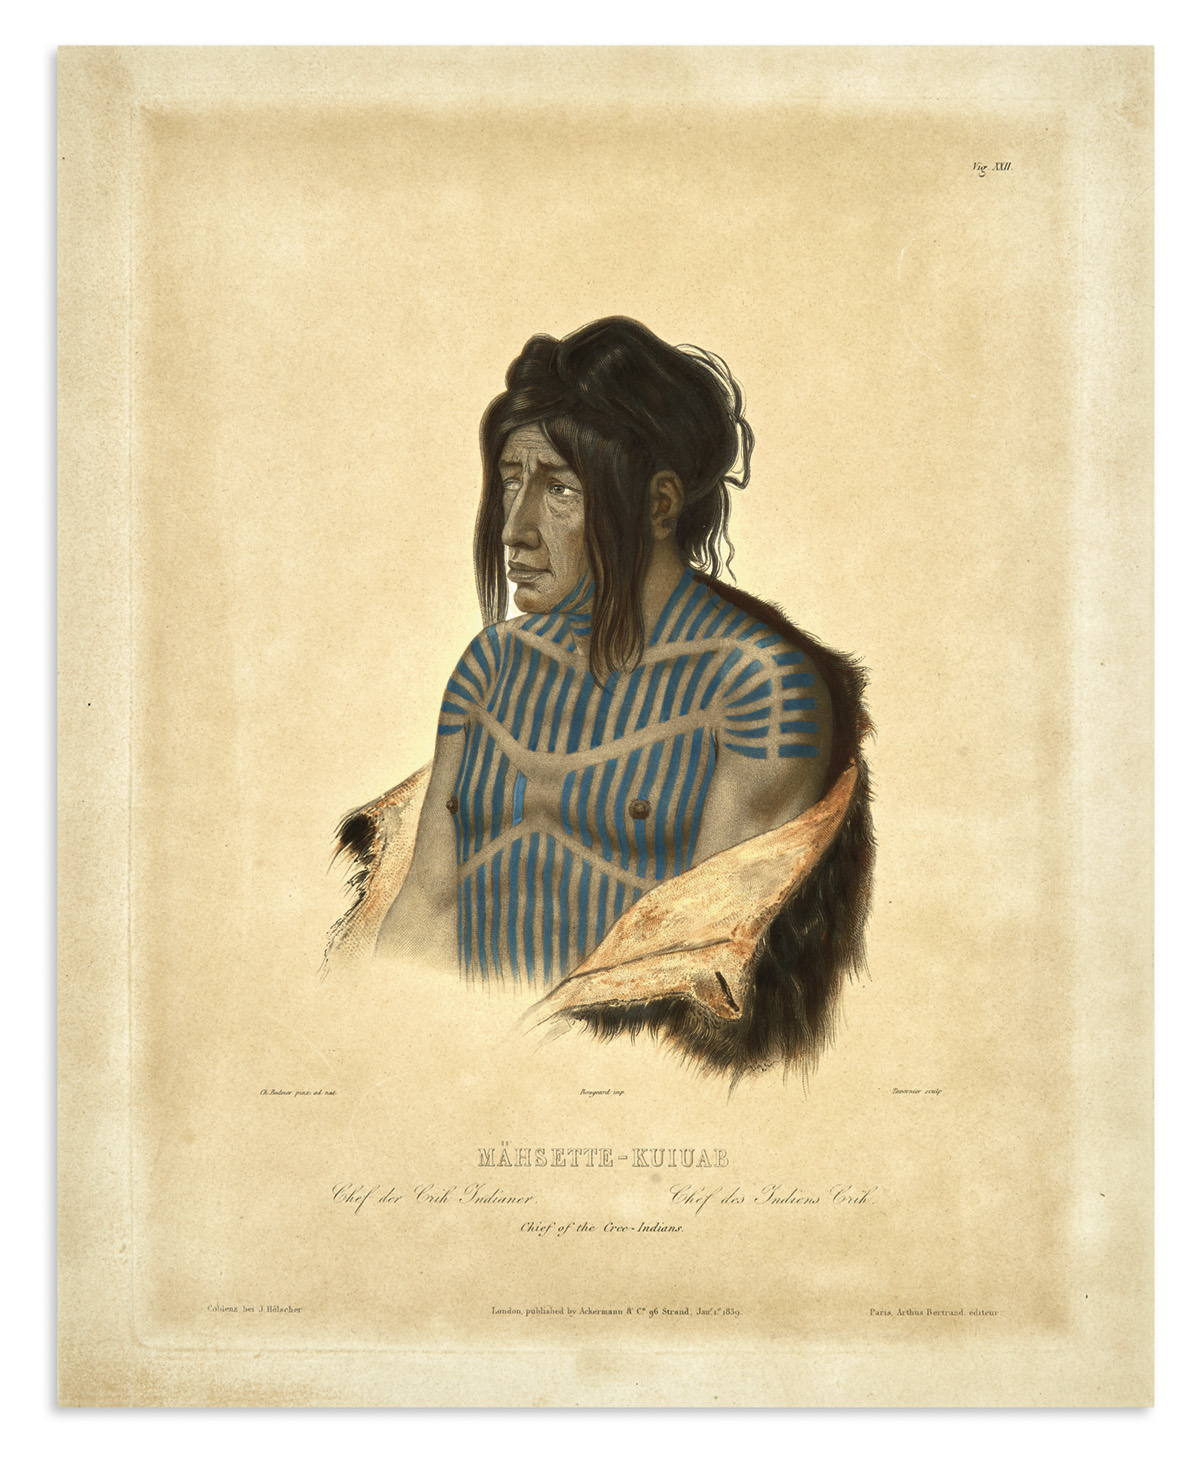 BODMER-KARL-Mahsette-Kuiuab-Chief-of-the-Cree-Indians-Vig-XX